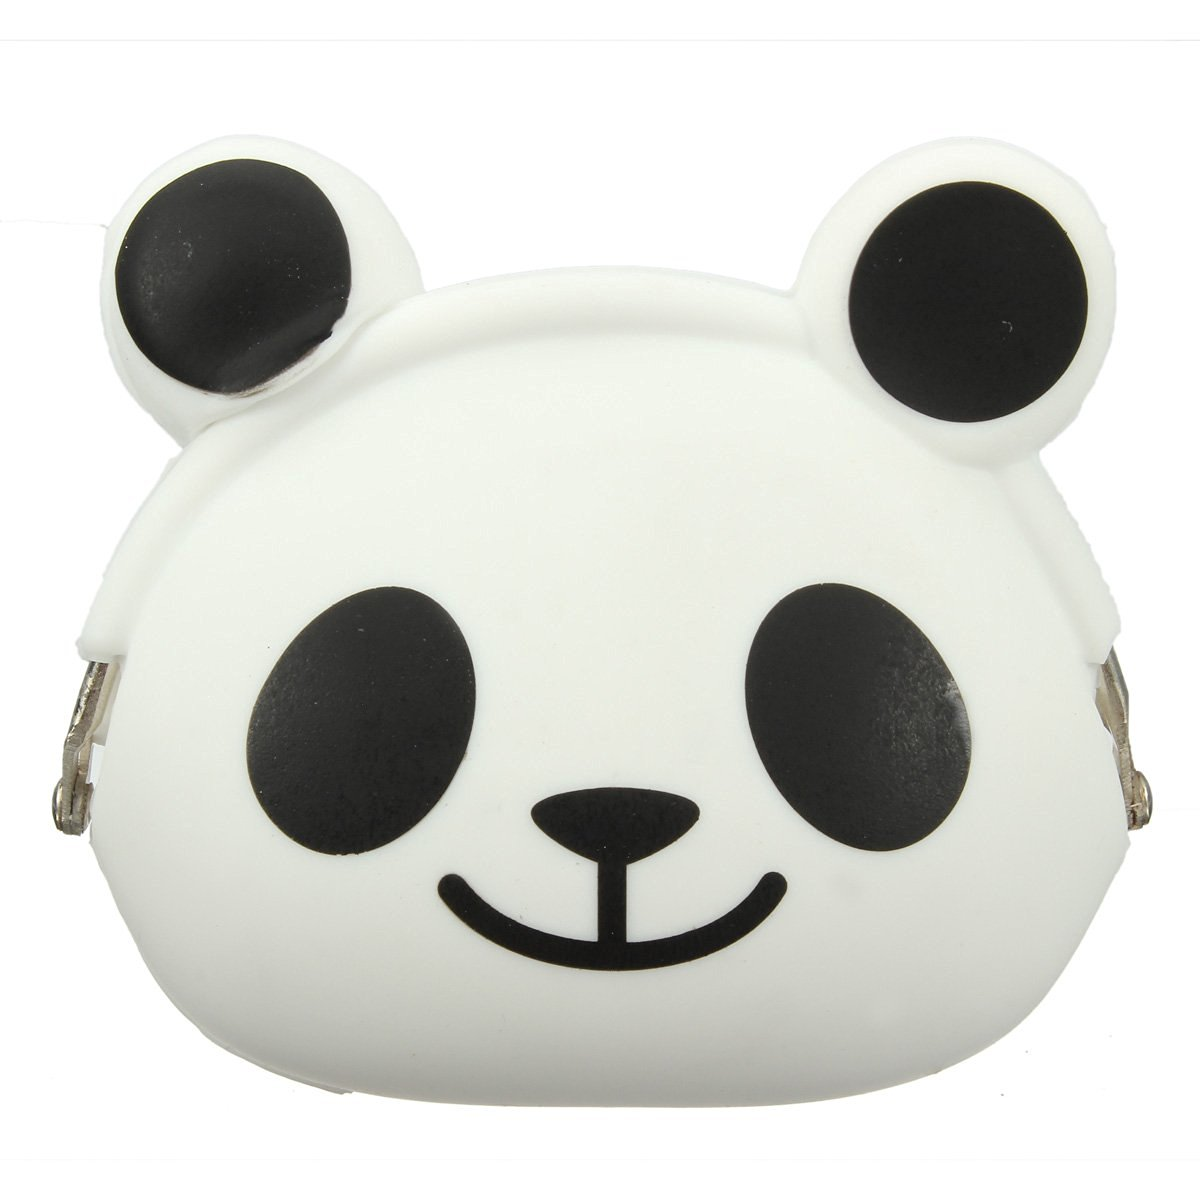 5pcs( ABDB-Women Girls Wallet Kawaii Cute Cartoon Animal Silicone Jelly Coin Bag Purse Kids Gift Panda